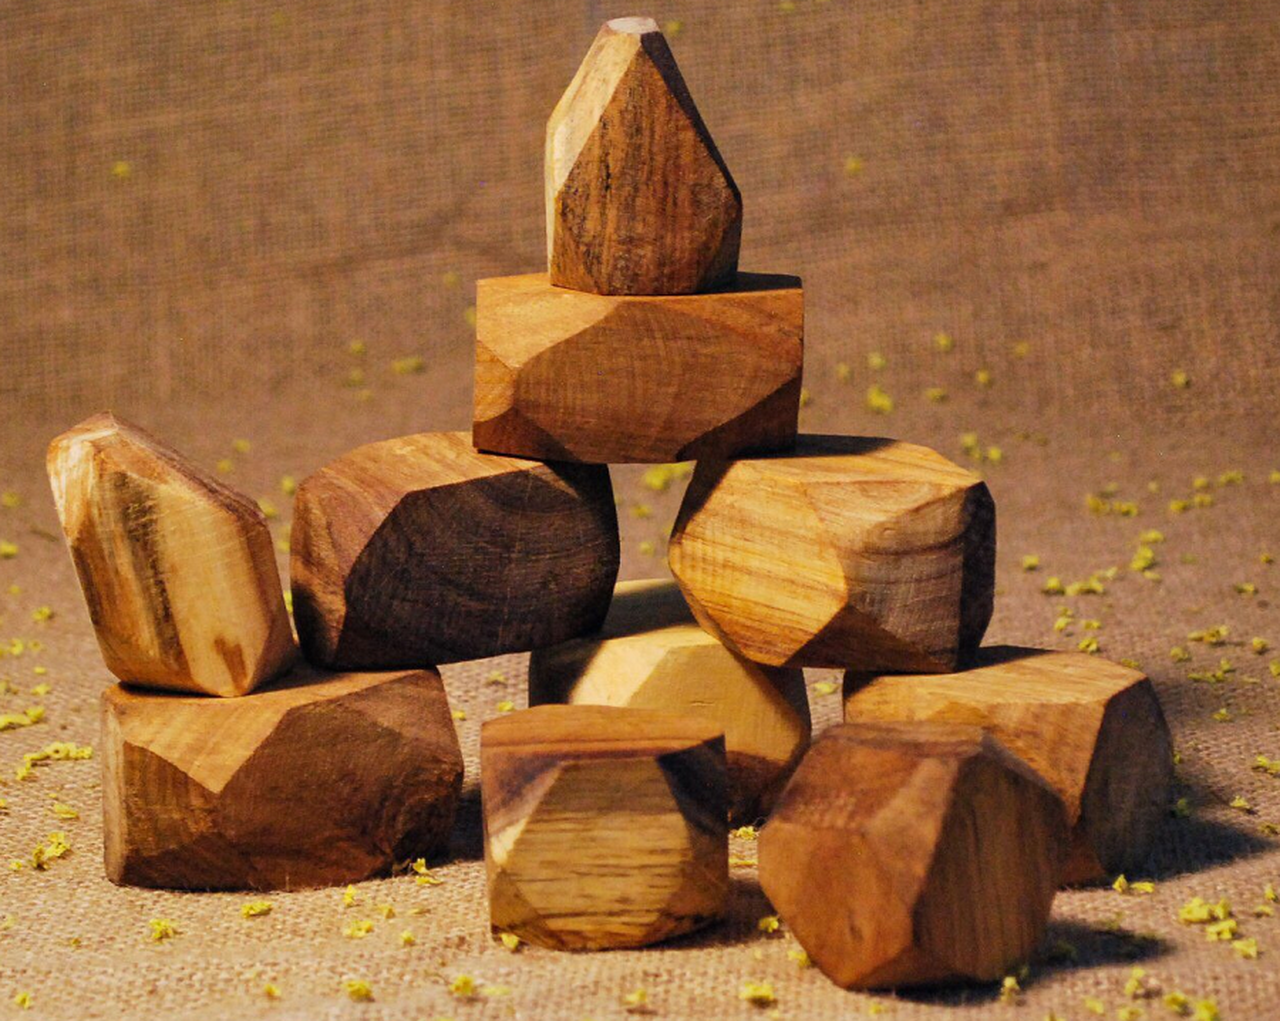 Natural Wooden Gems - AJ&Henny